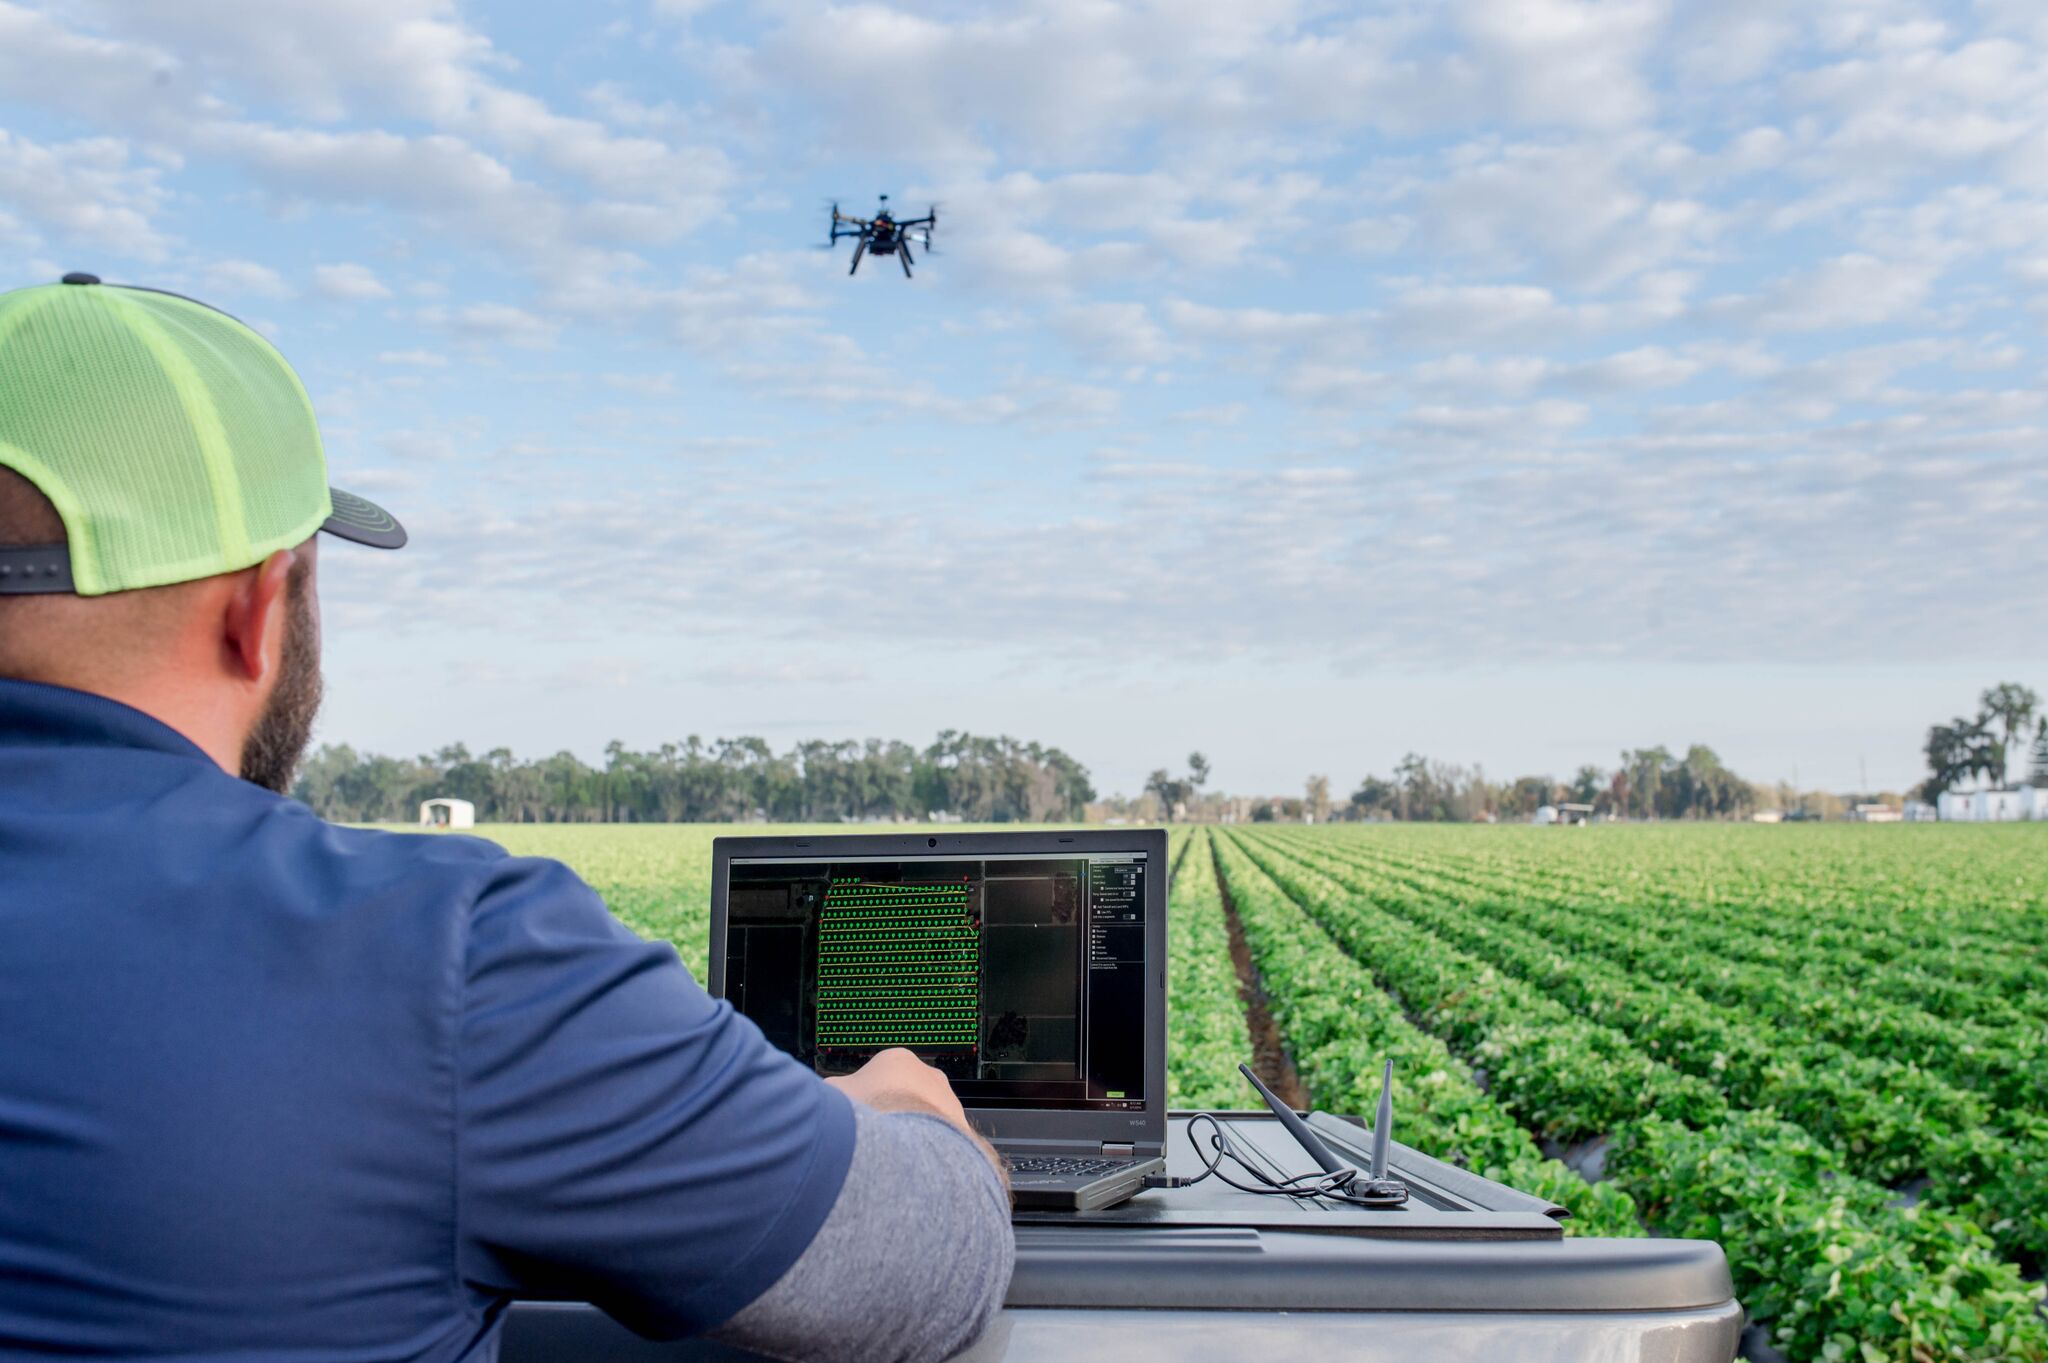 Revolutionary New Farm Implements Take to the Air: Drones